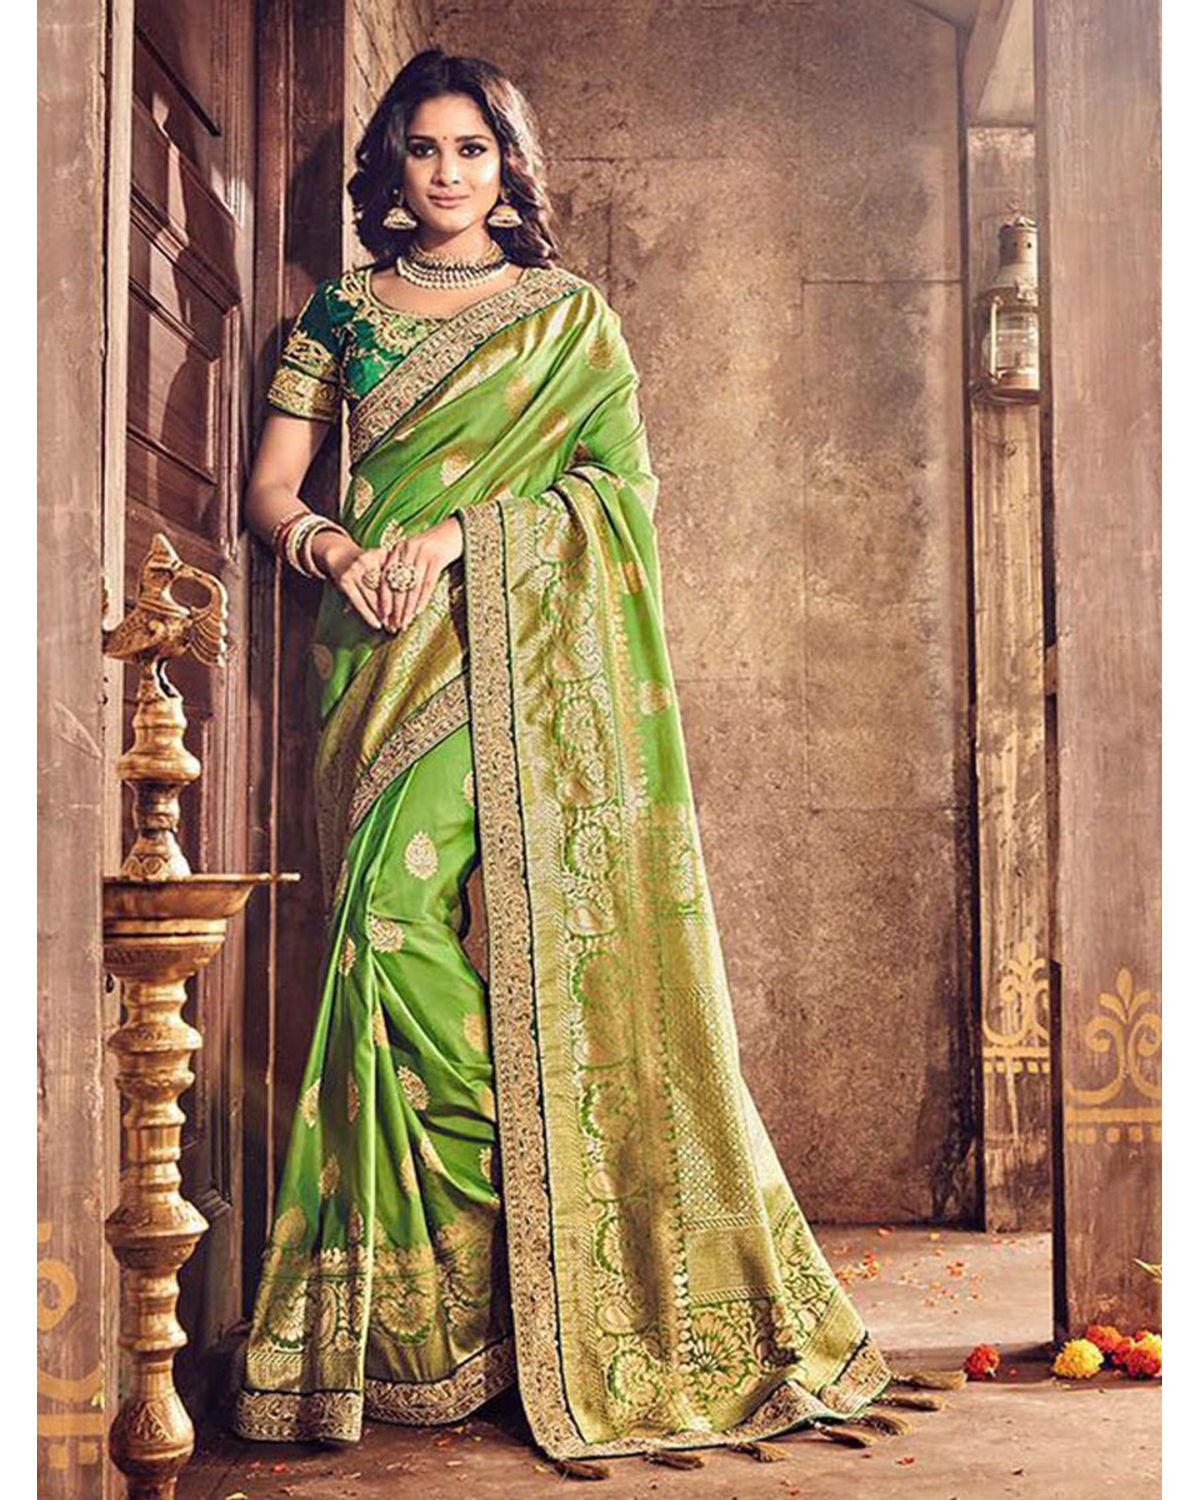 e0800e62f7 Banarasi Silk Wedding Saree With Meenakari Weave In Green Color ...